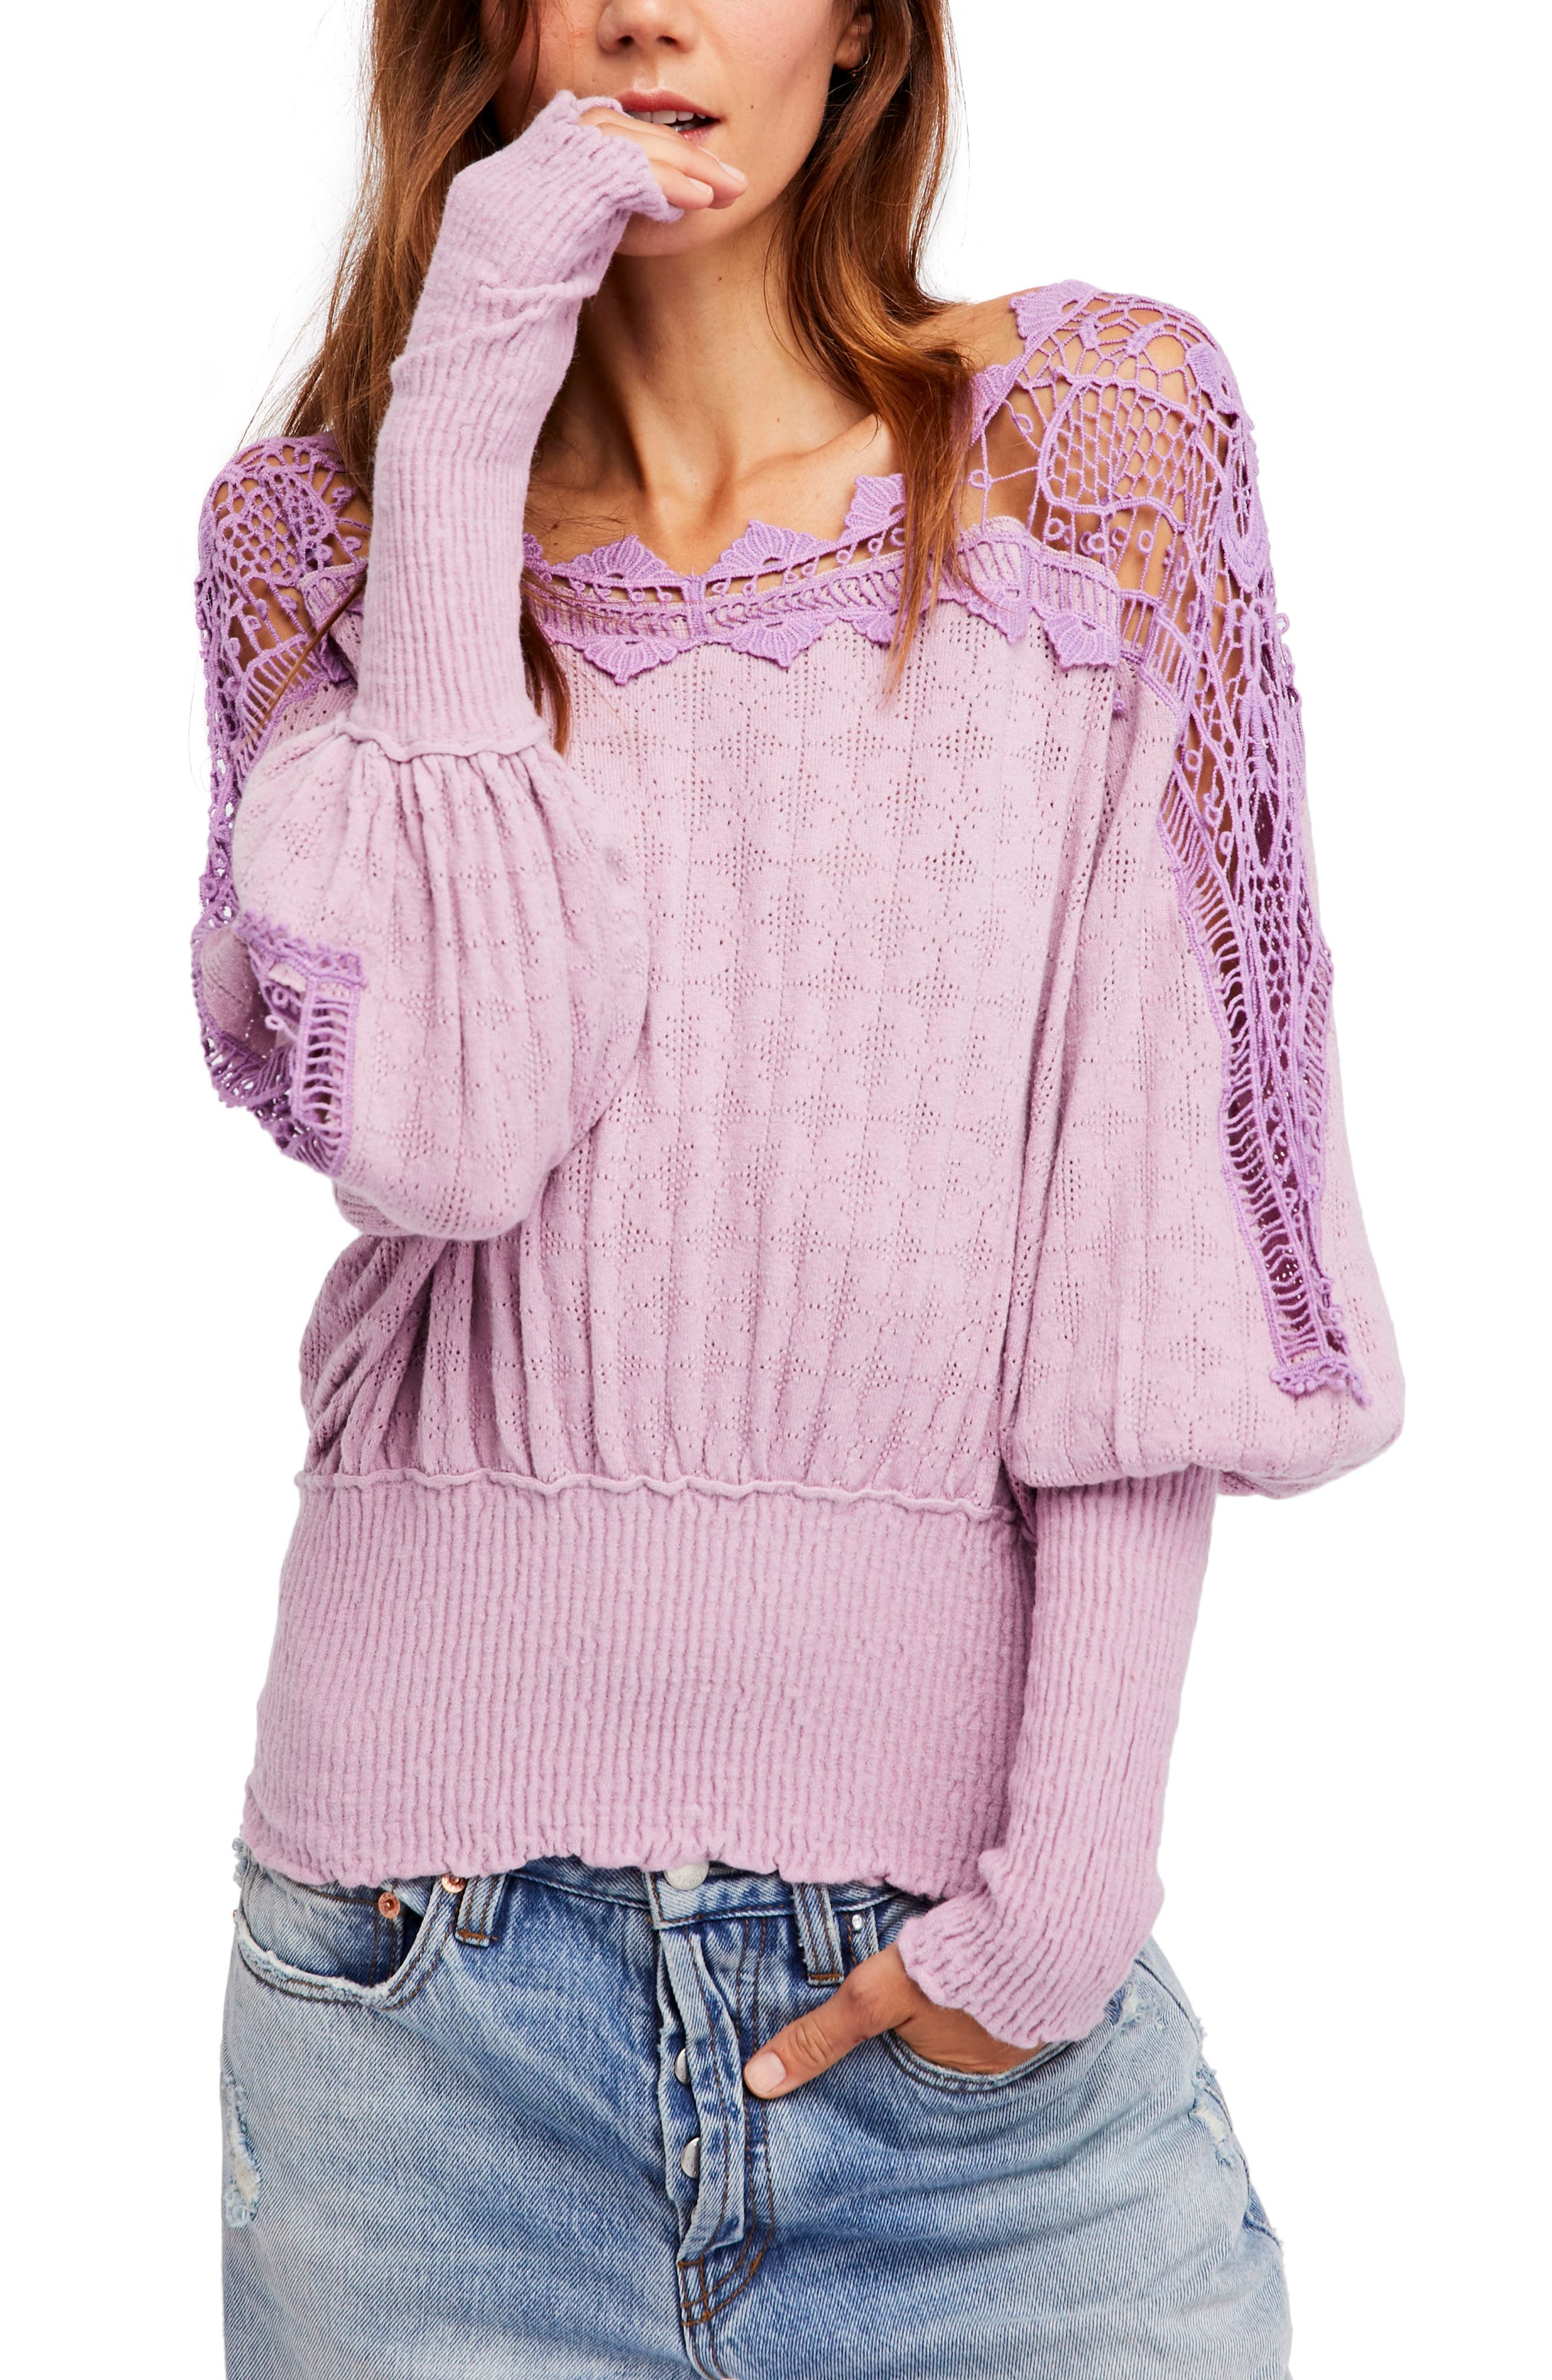 Free People Love Lace Sweater